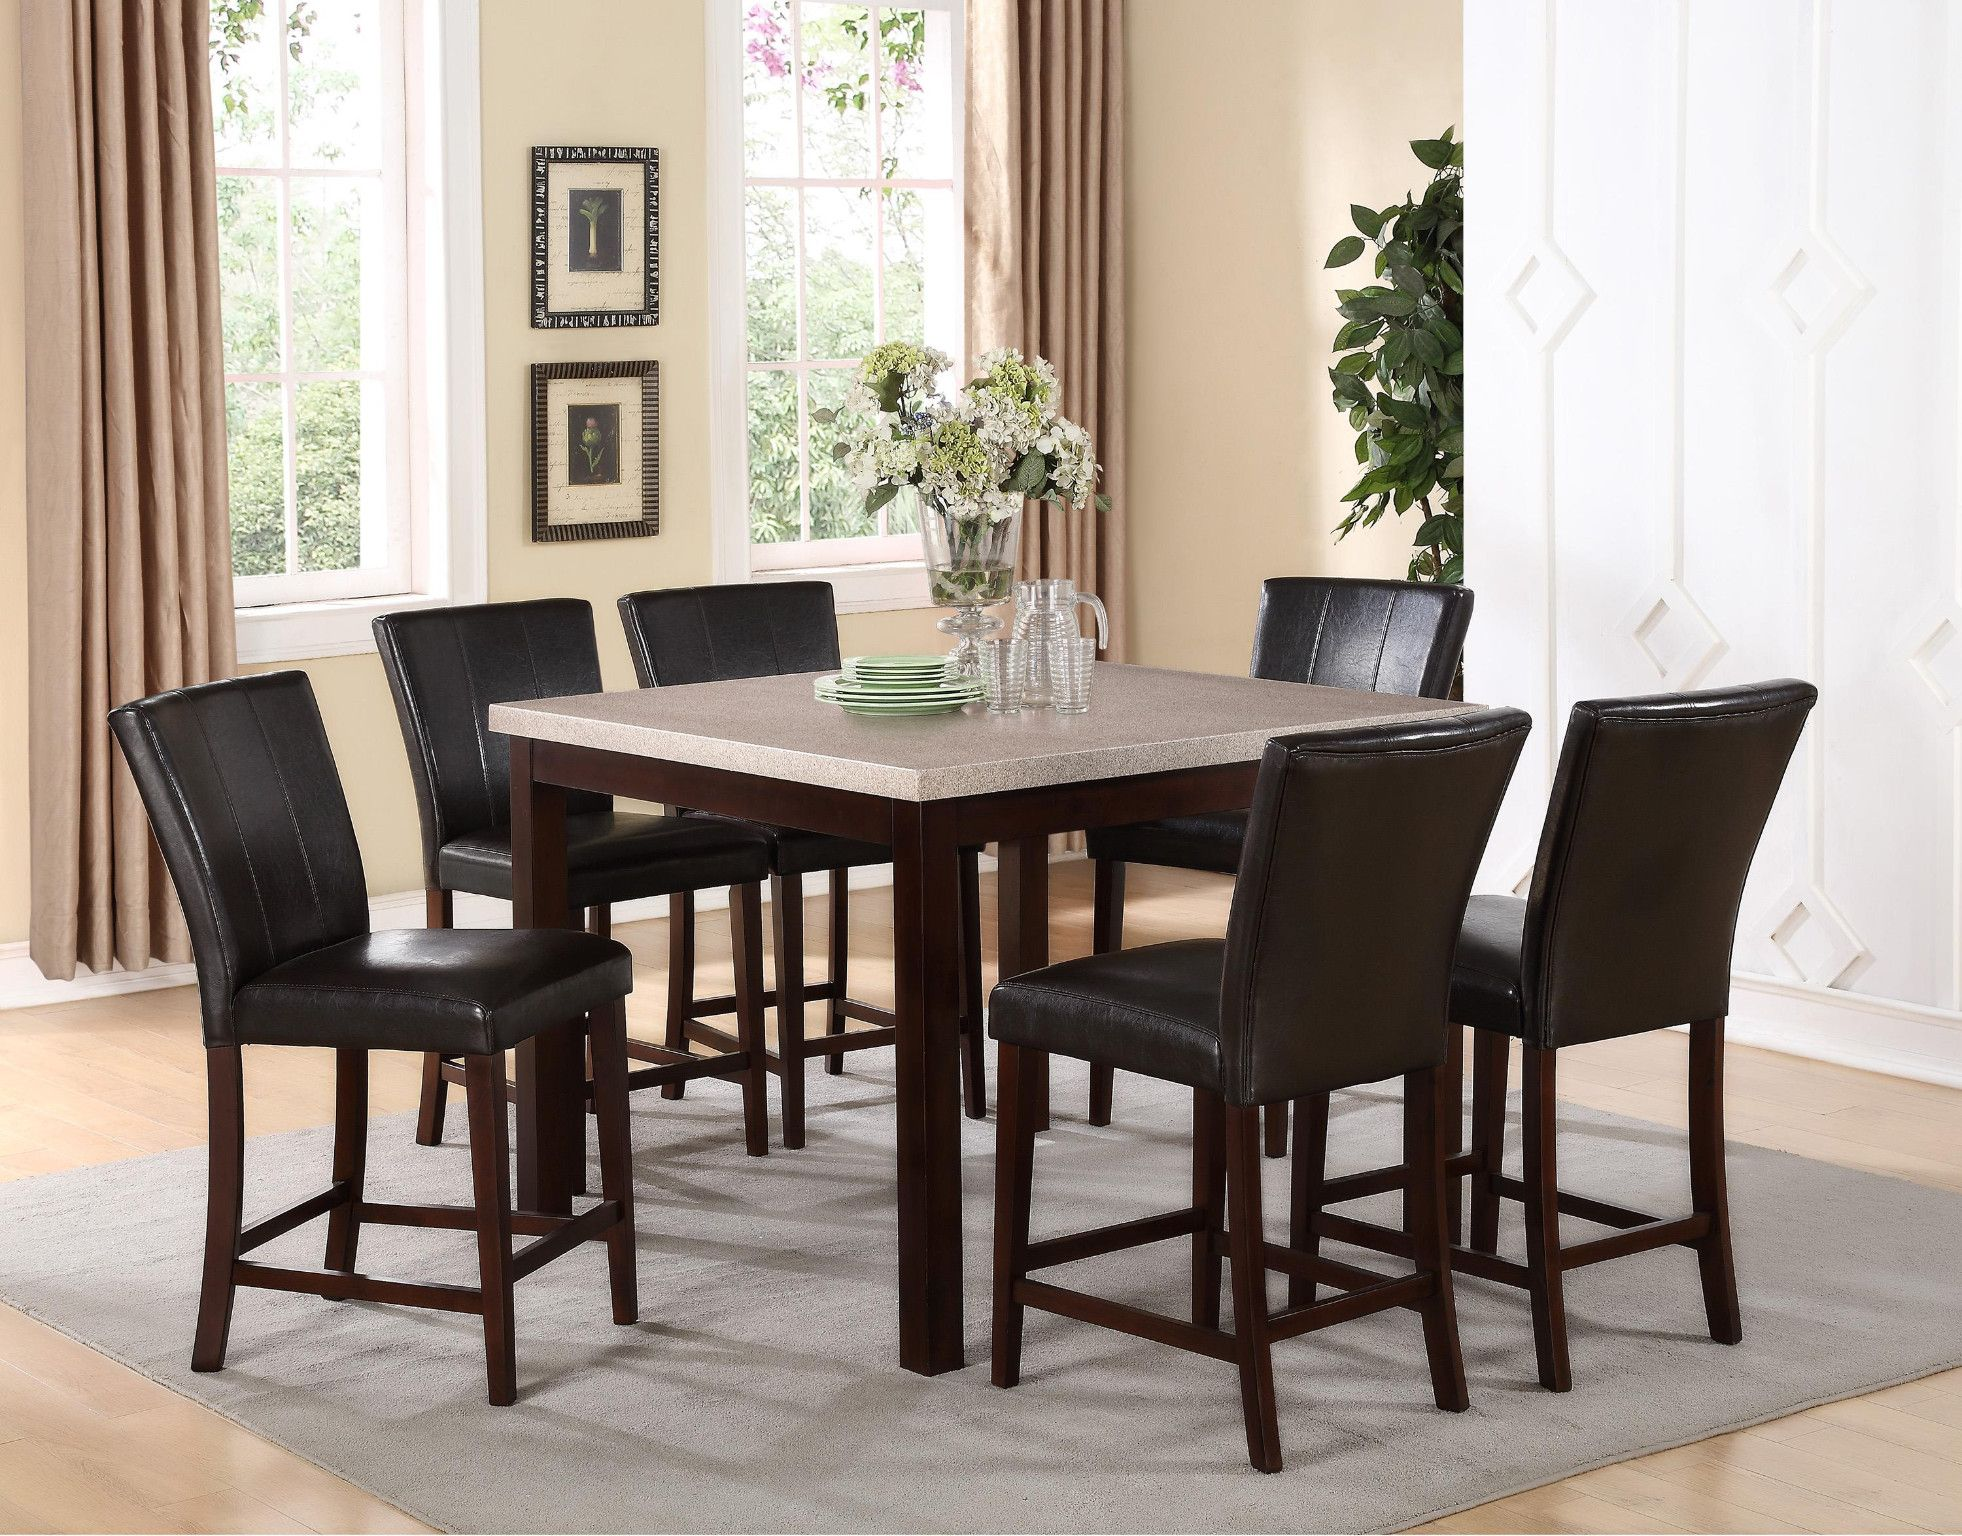 Dominic 5 Piece Counter Height Table And 4 Chairs 649 00 Table 48